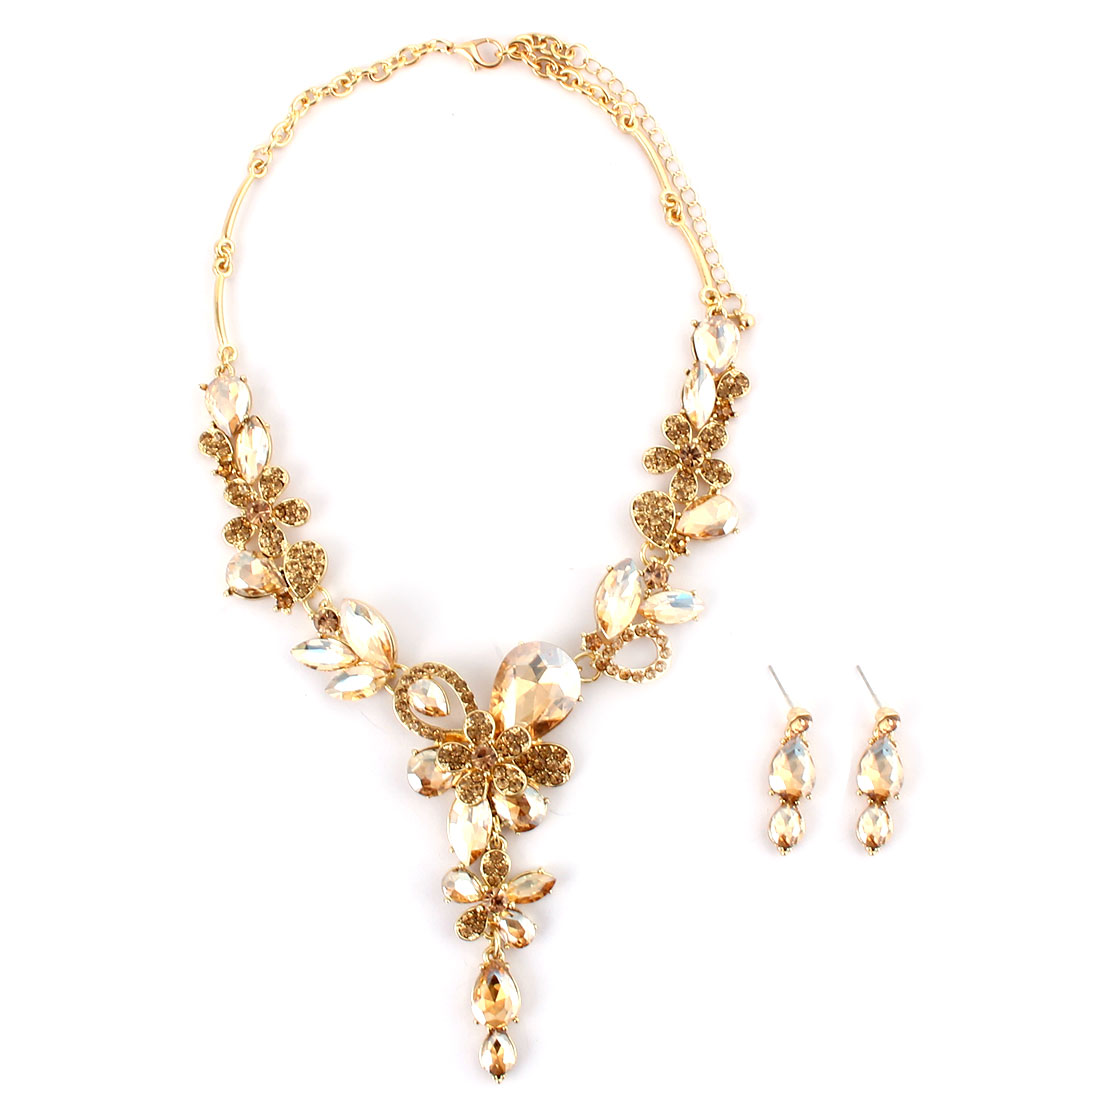 Women Metal Flower Decor Pendant Bib Collar Charming Choker Necklace Earrings Gold Tone Set